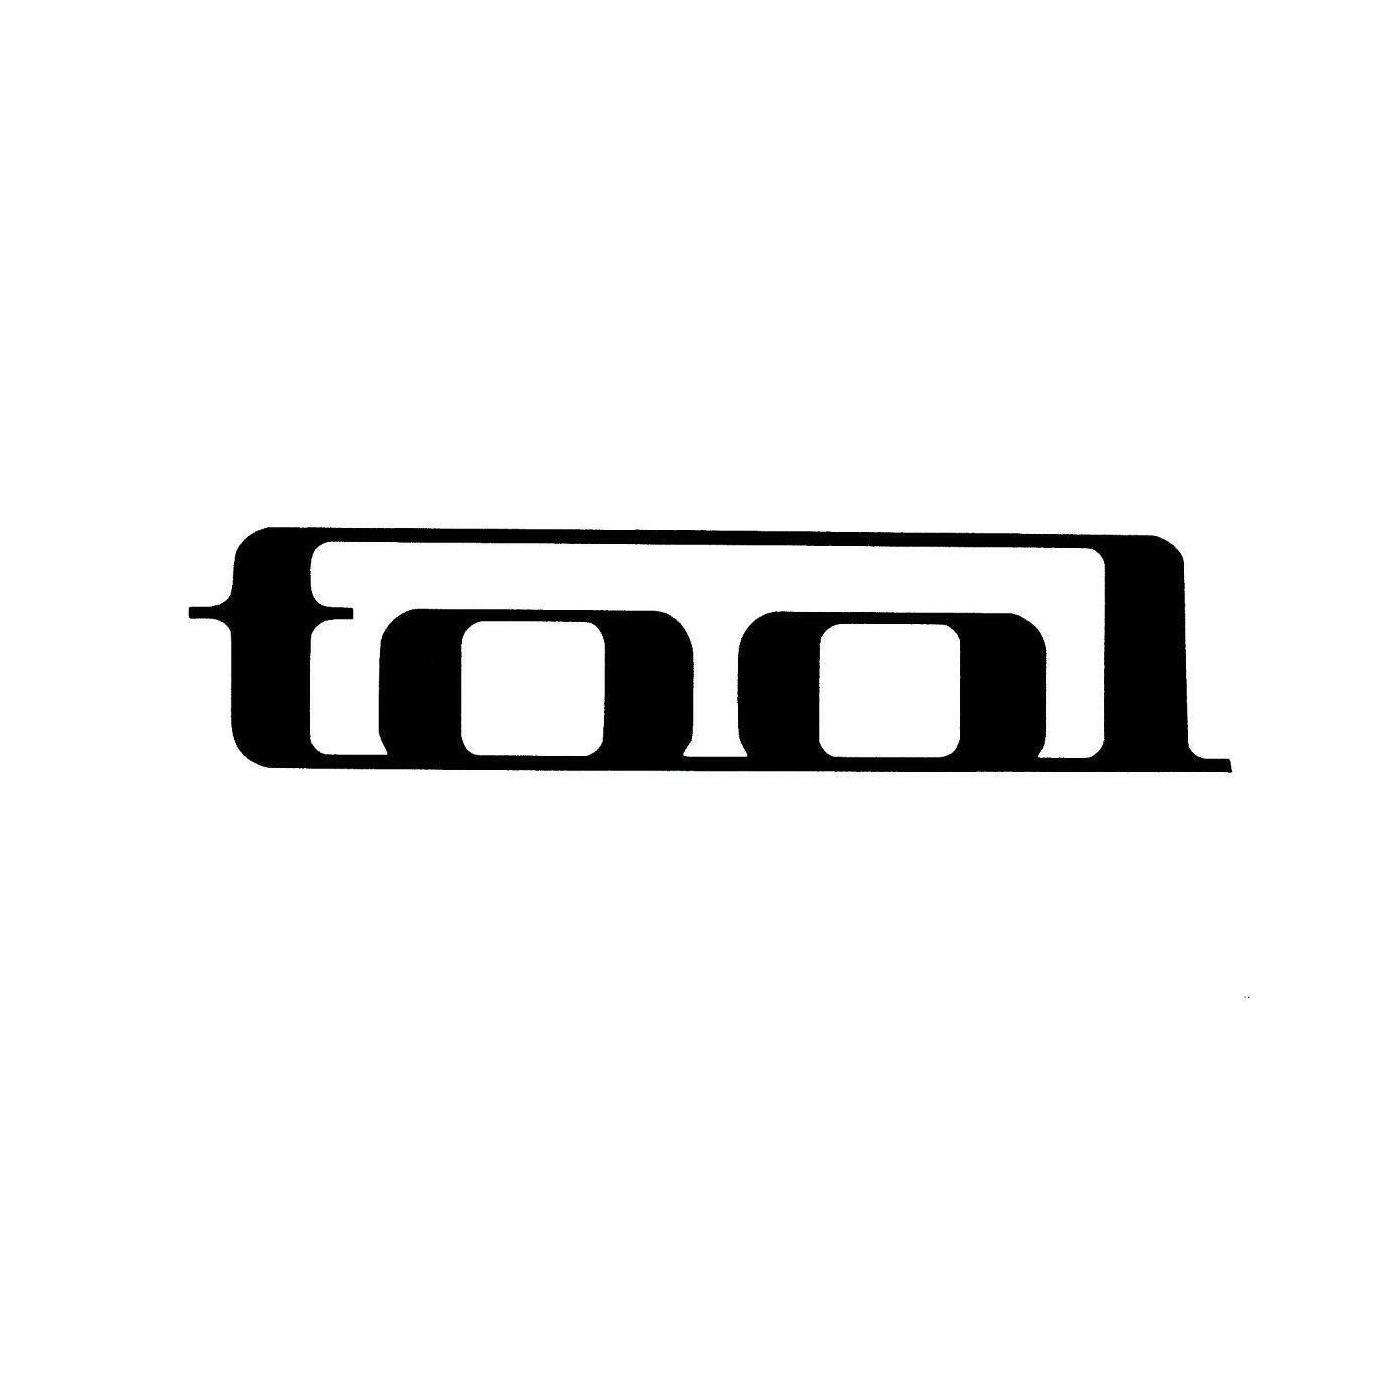 2019 tool rock band car truck window sticker decal funny car window bumper novelty drift vinyl decal sticker from xymy787 2 92 dhgate com